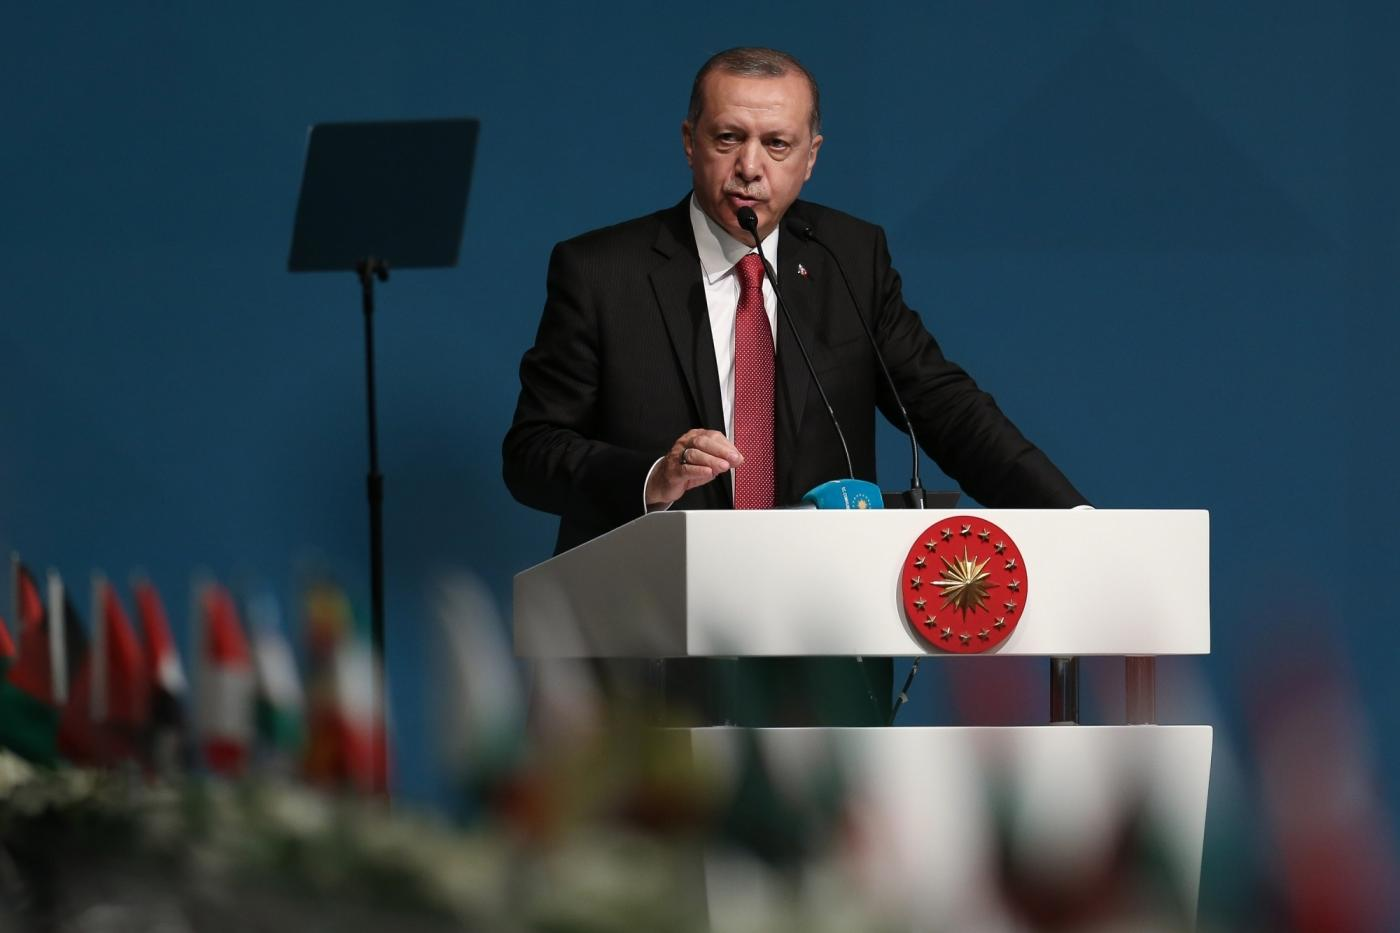 """ISTANBUL, May 19, 2018 (Xinhua) -- Turkish President Recep Tayyip Erdogan makes a speech at an extraordinary summit of the Organization of Islamic Cooperation (OIC) in Istanbul, Turkey, on May 18, 2018. The 57-member OIC on Friday vowed to take """"all necessary steps"""" to prevent other countries from following the U.S. example of moving their Israel embassies to Jerusalem. (Xinhua/Anadolu Agency/IANS) by ."""